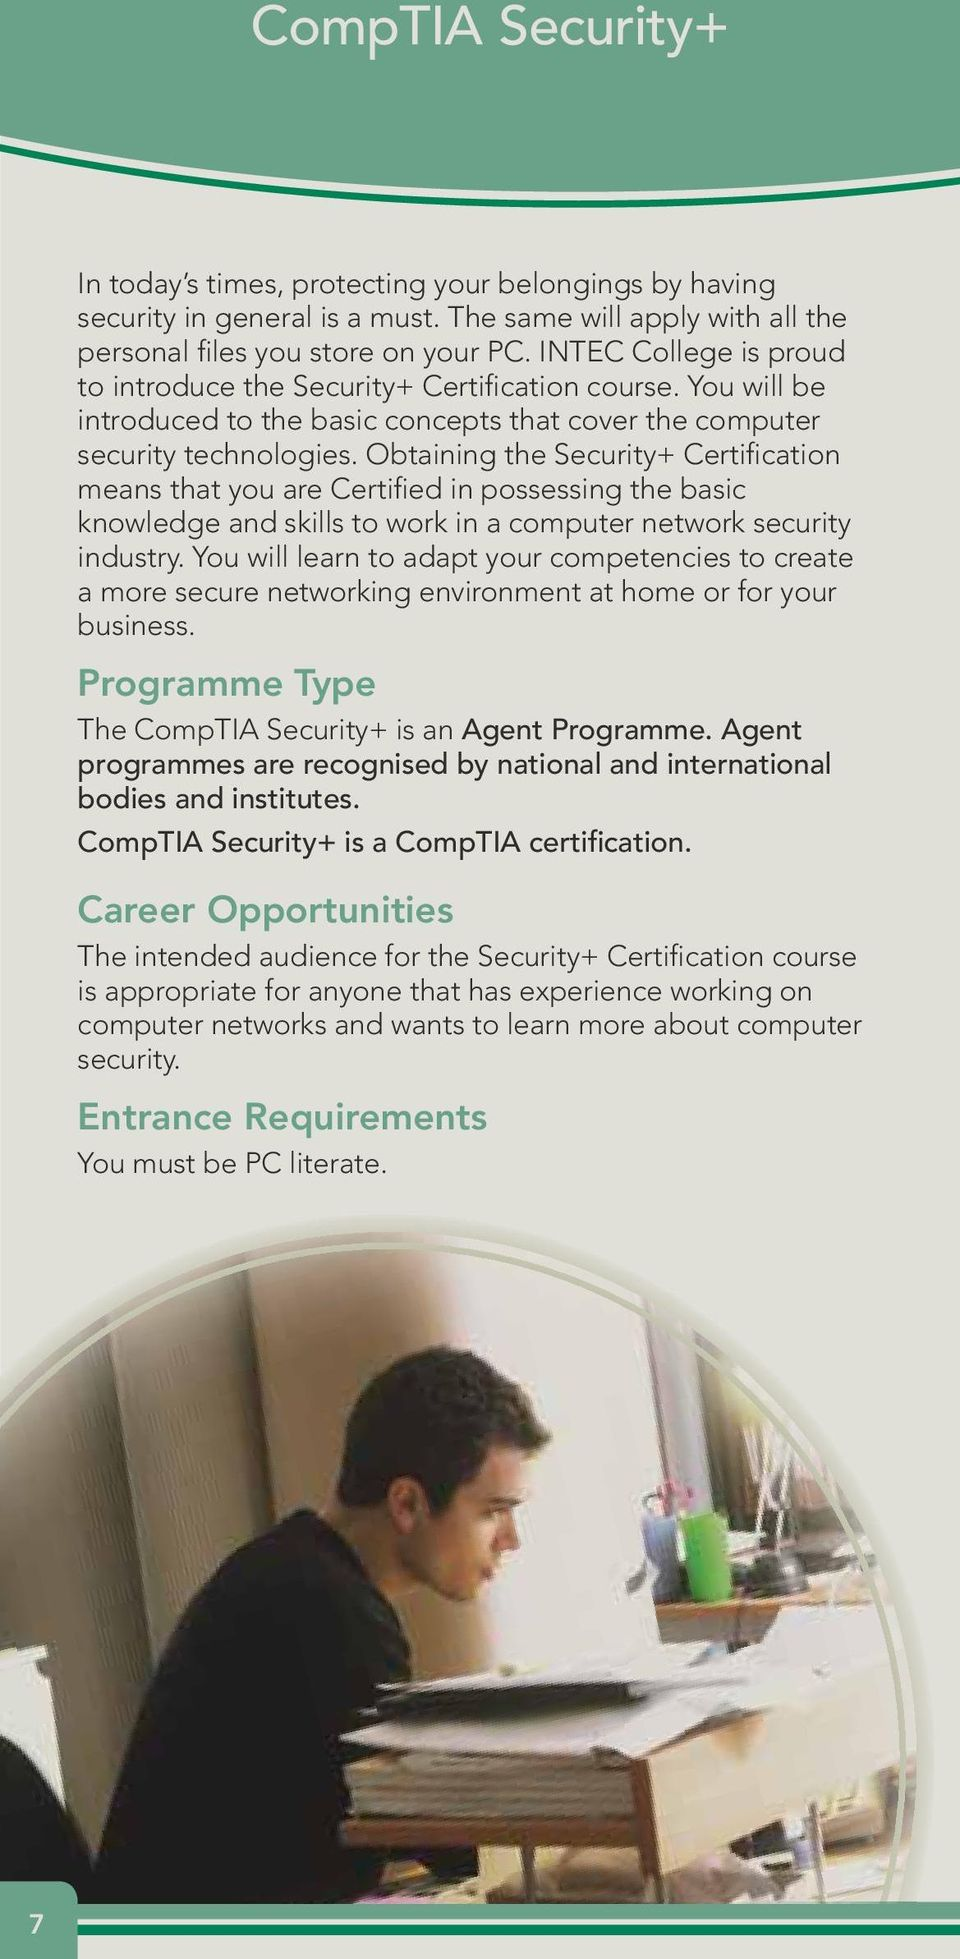 Obtaining the Security+ Certification means that you are Certified in possessing the basic knowledge and skills to work in a computer network security industry.